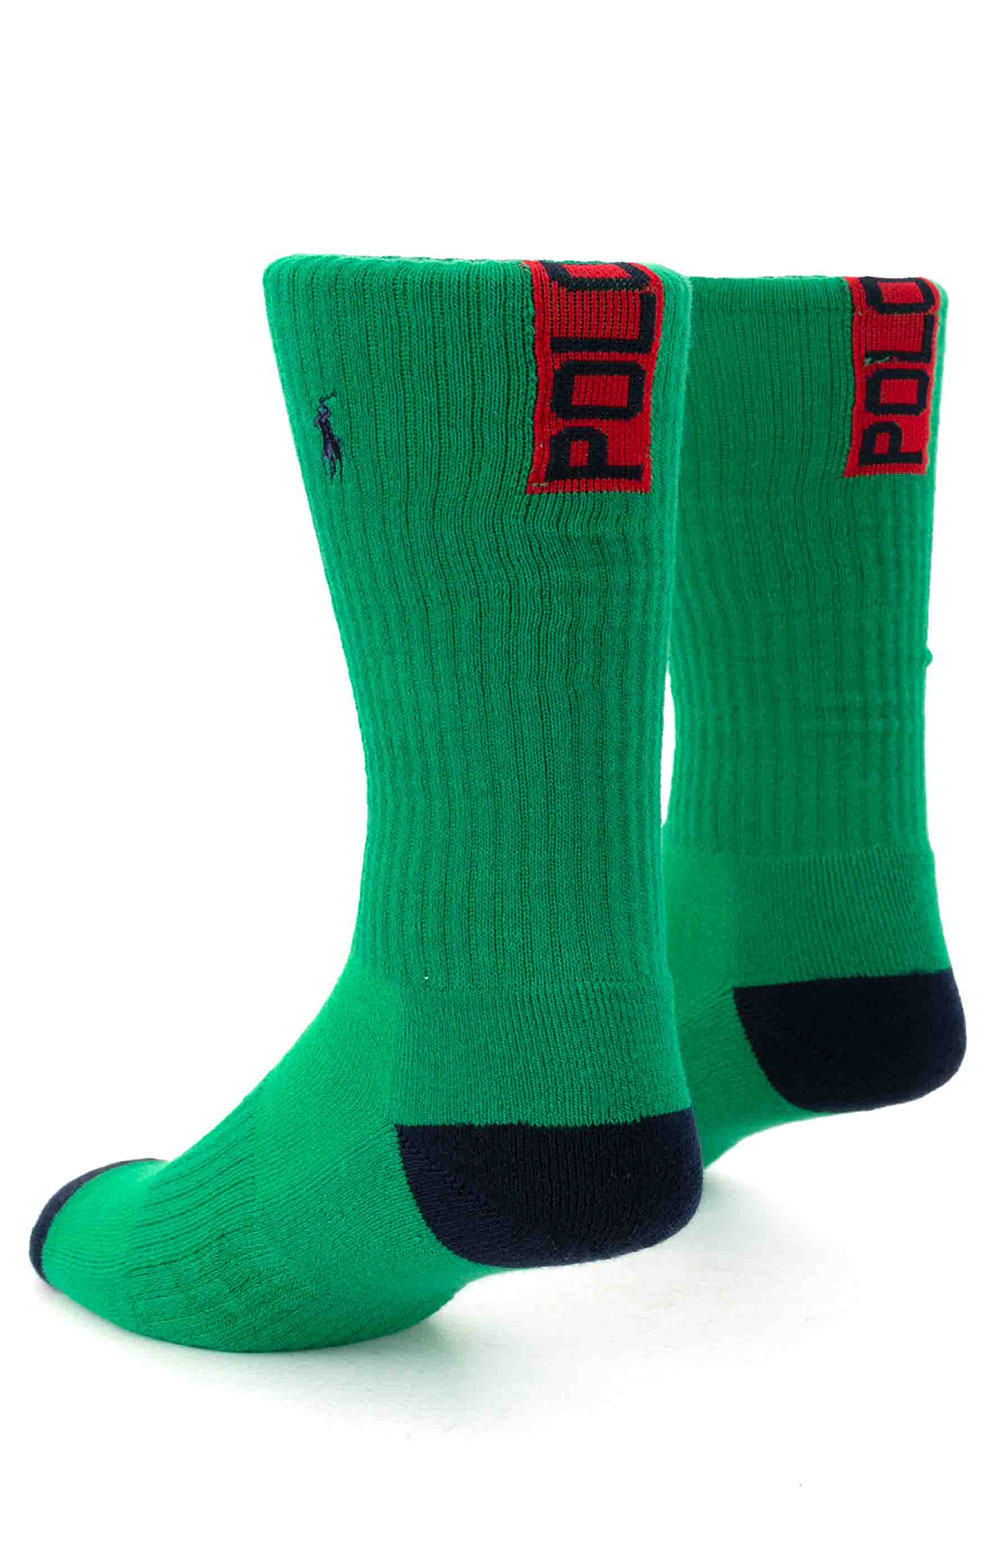 Colorblock Cushioned Crew Socks - 6 Pack 7